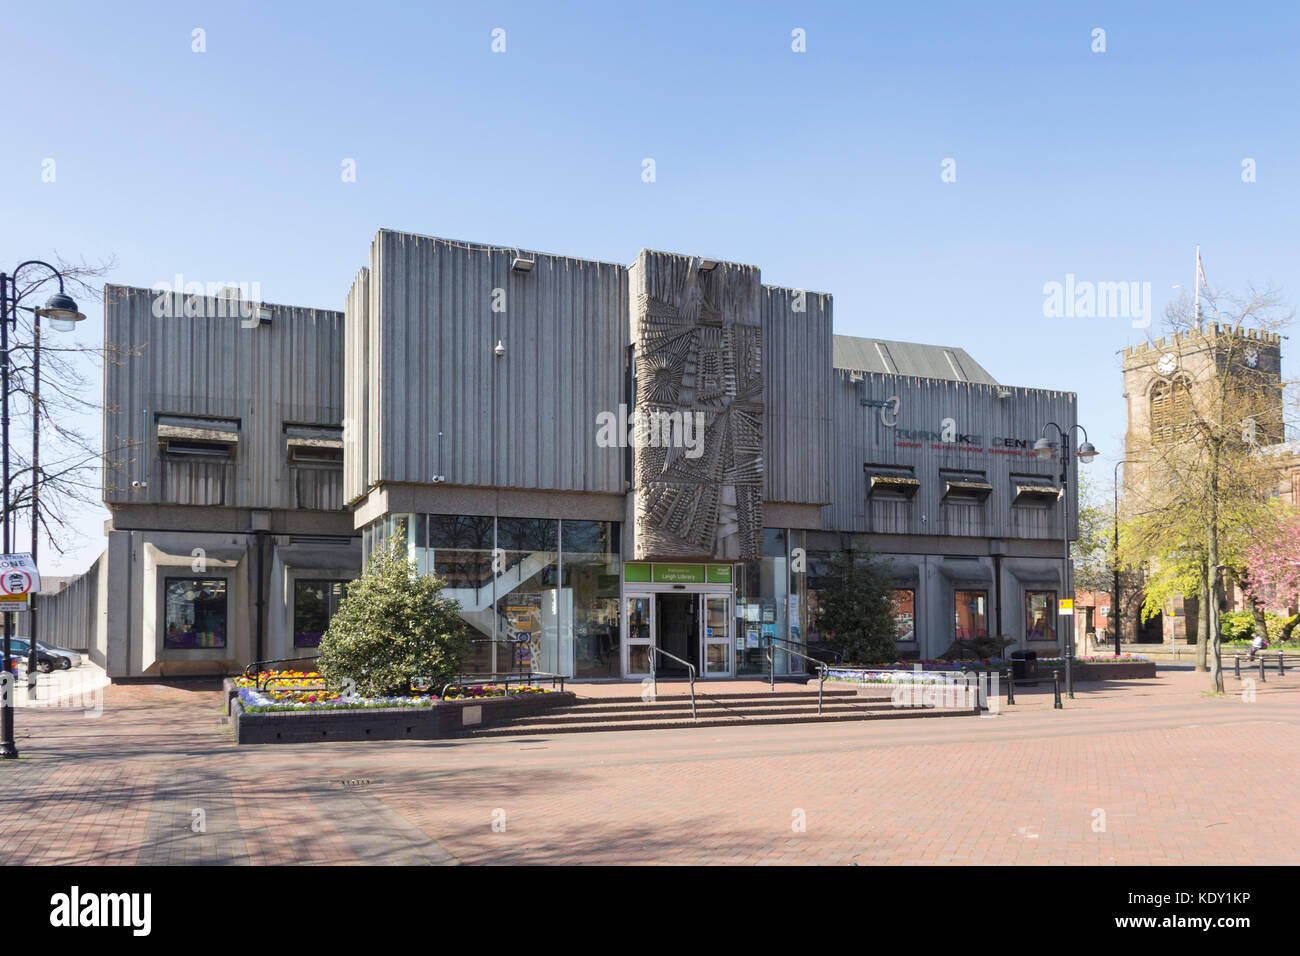 Turnpike Centre art gallery and public library in Leigh, featuring a sculpted mural in concrete designed by William - Stock Image